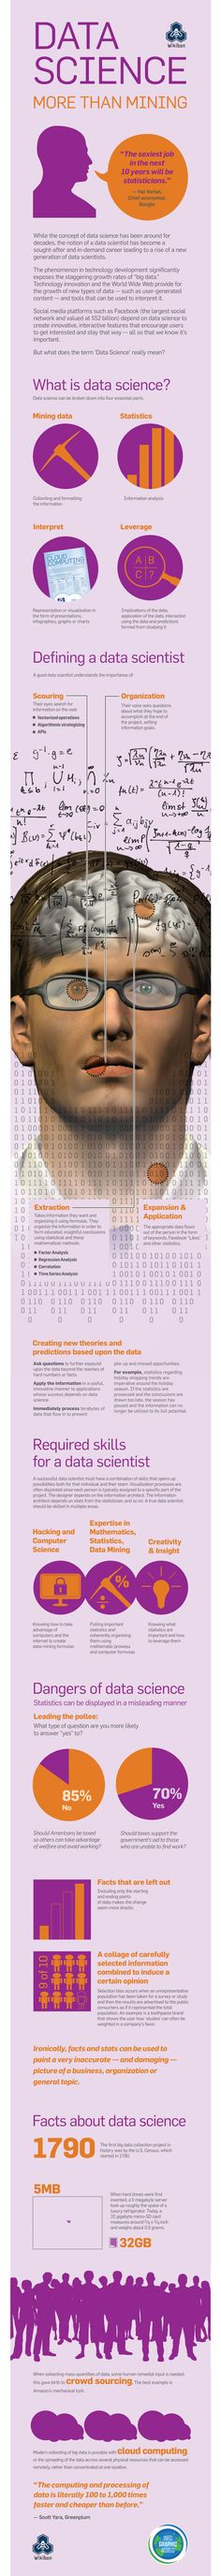 Data Science: More Than Mining Infographic